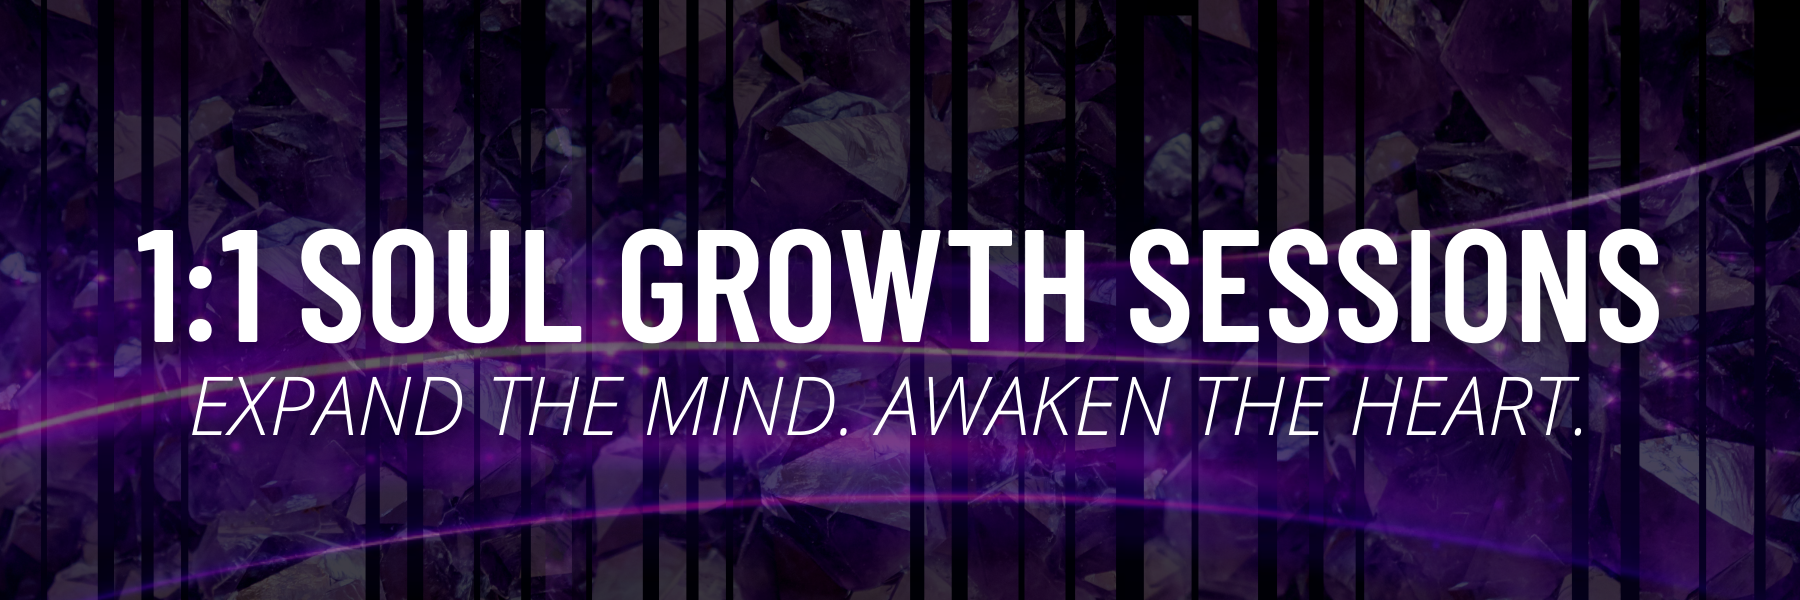 soul growth sessions